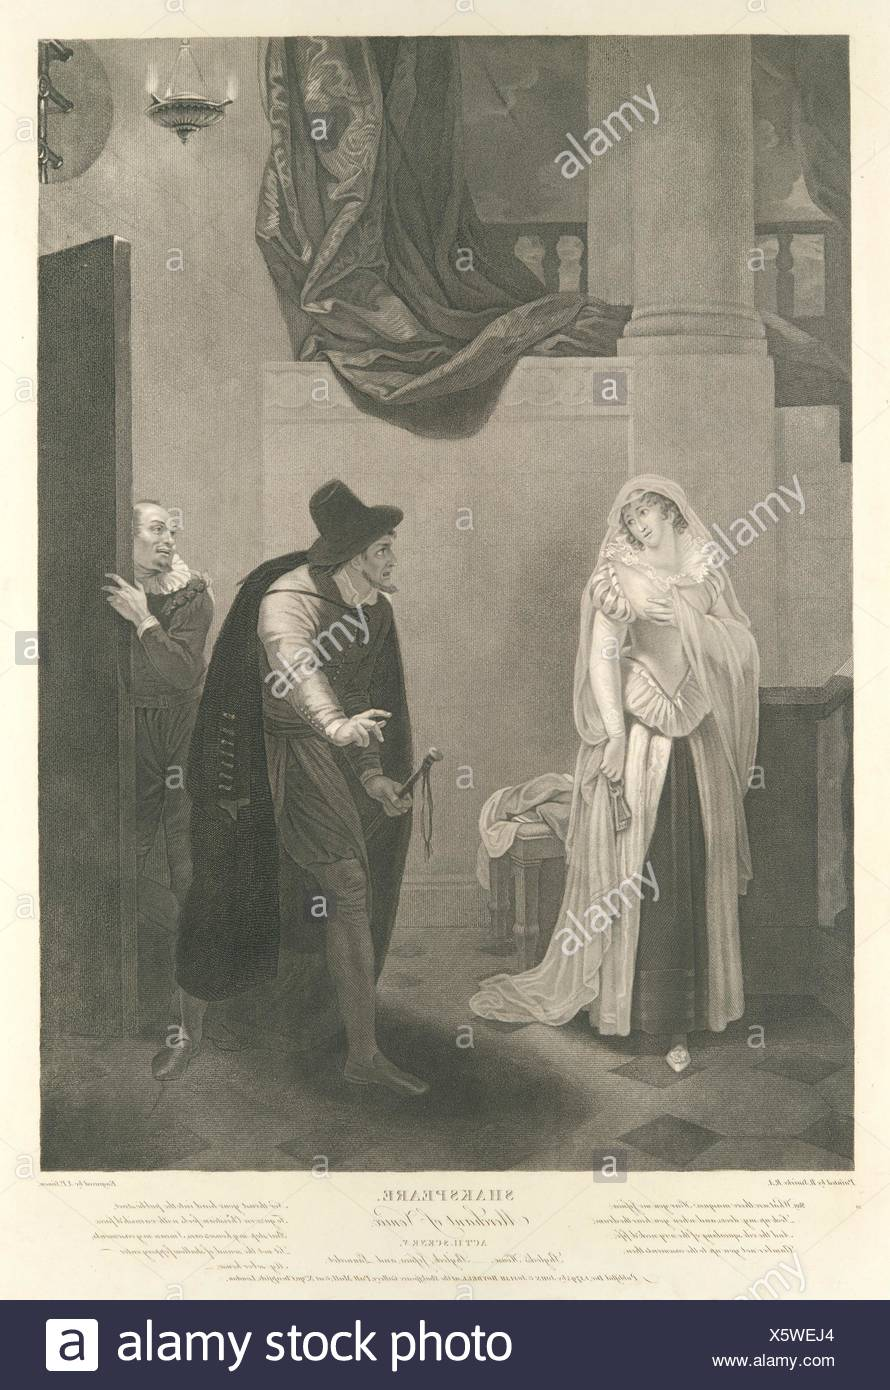 a sympathy for shylock in the merchant of venice by william shakespeare Free coursework on analysis of shylock in shakespeares merchant of venice from essayukcom, the uk essays company for essay, dissertation and coursework writing.